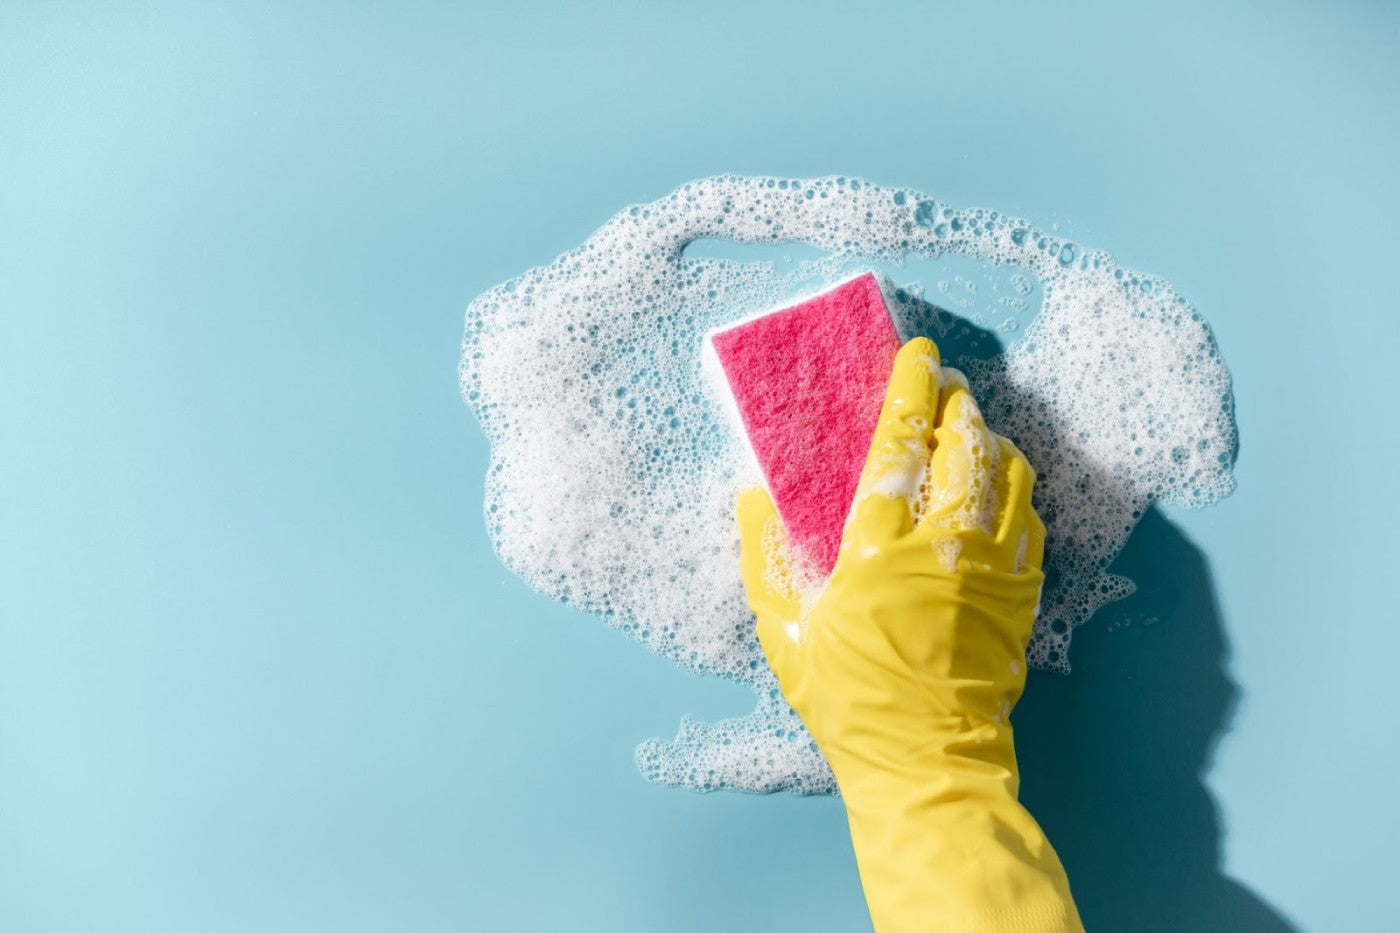 yellow gloved hand is using a soapy pink sponge to clean.